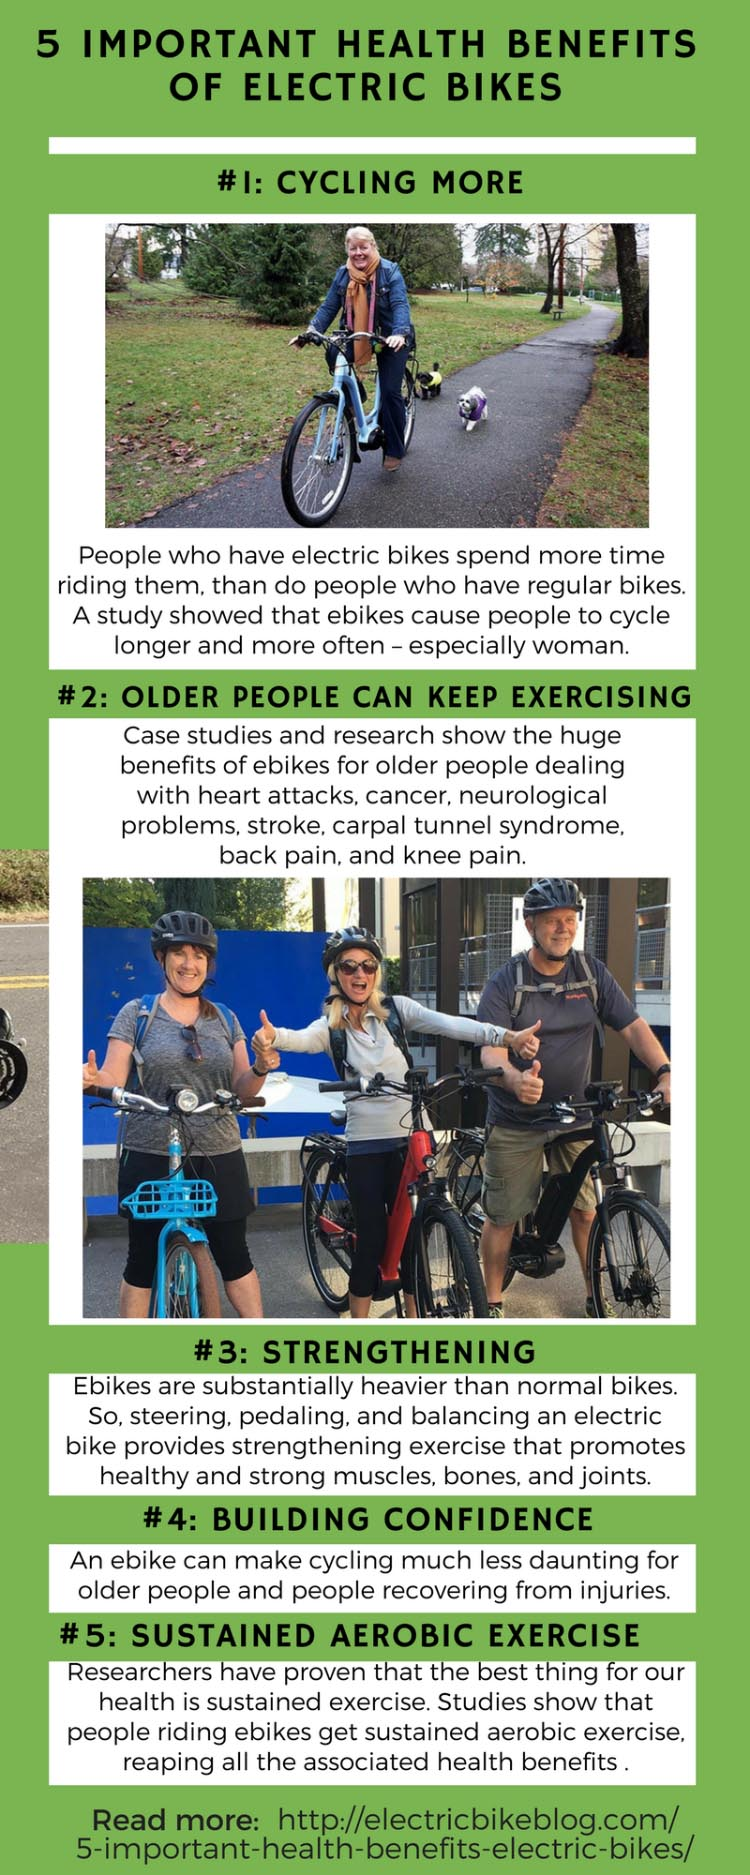 5 Important Health Benefits of Electric Bikes